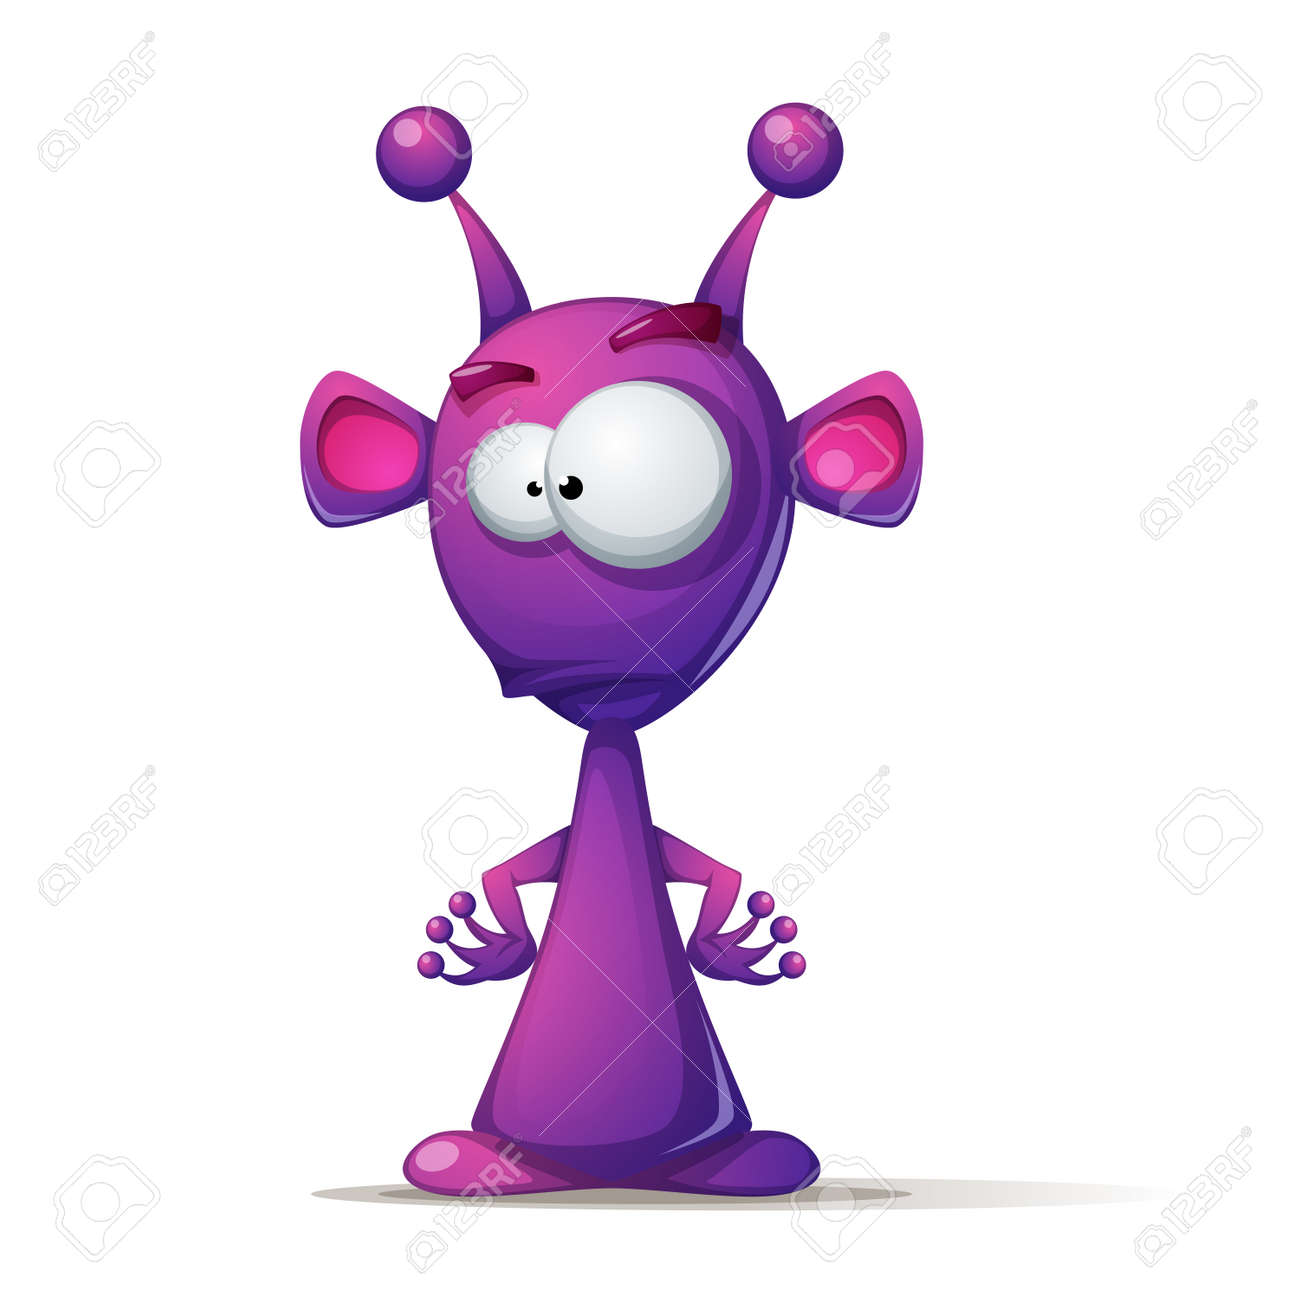 Funny, cute alien with big eye and ear - 96298359